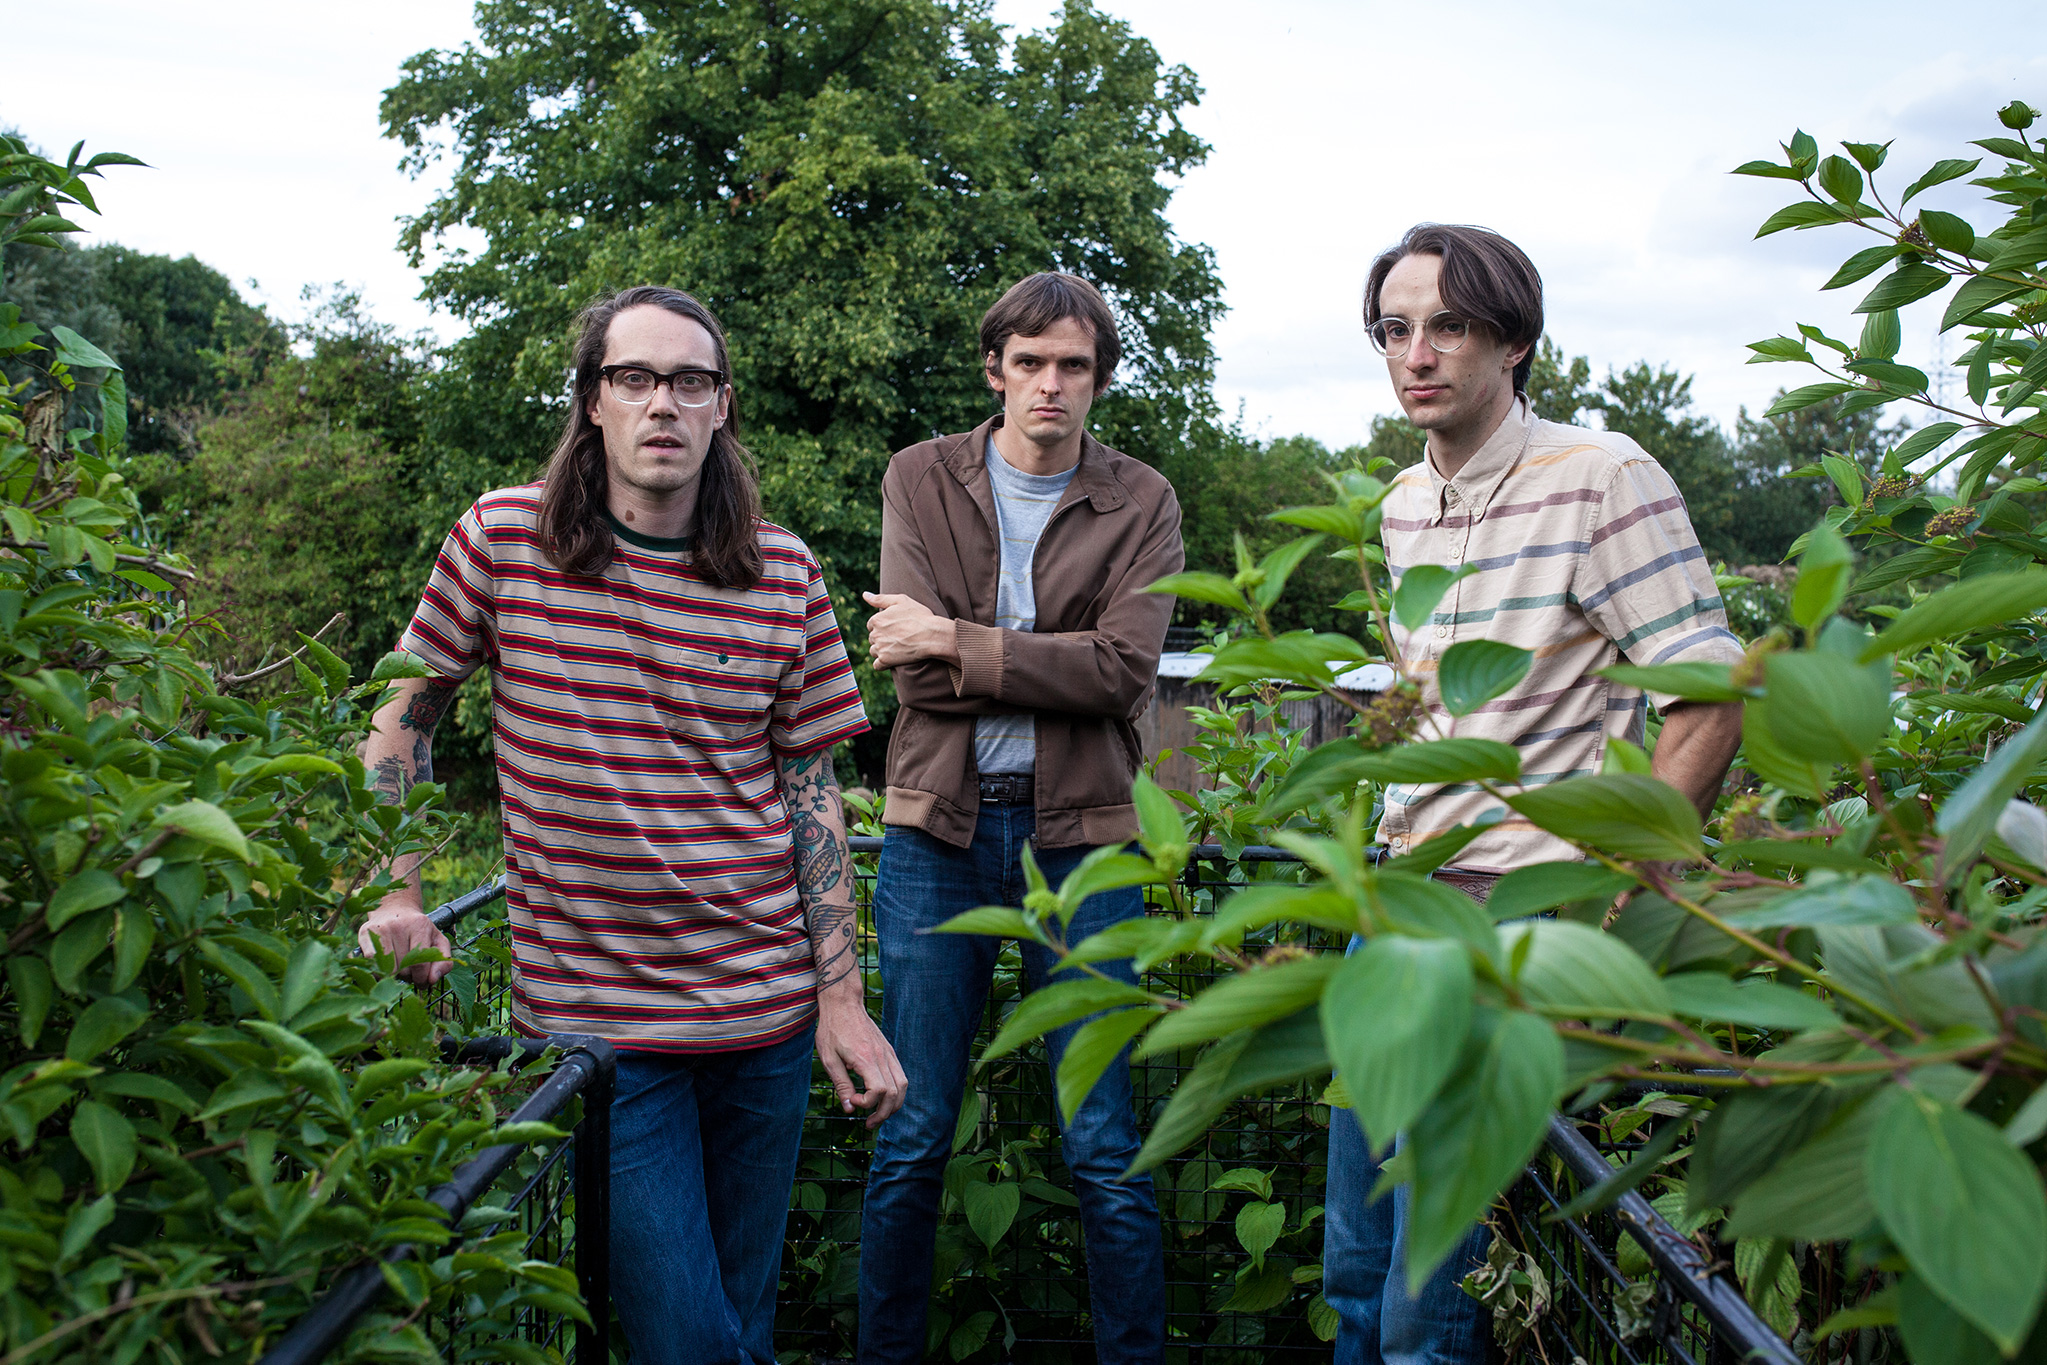 Track by track: Mazes - Wooden Aquarium